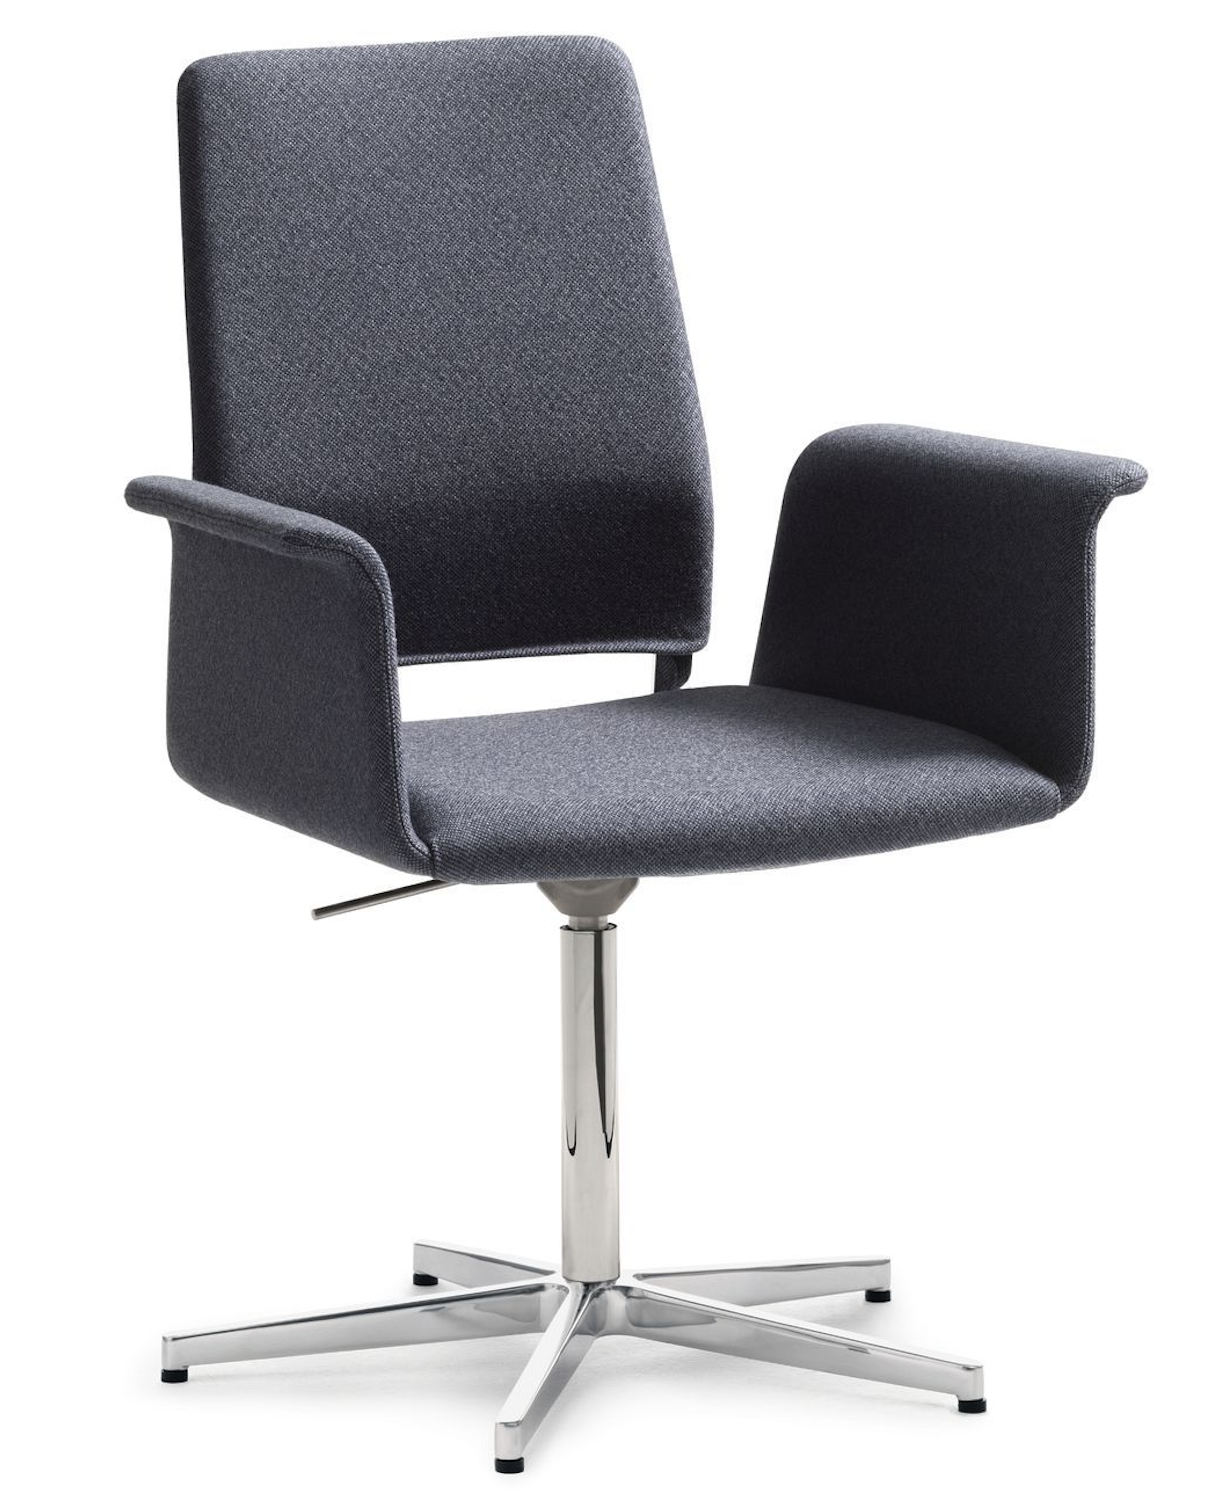 Product Image Fino chair